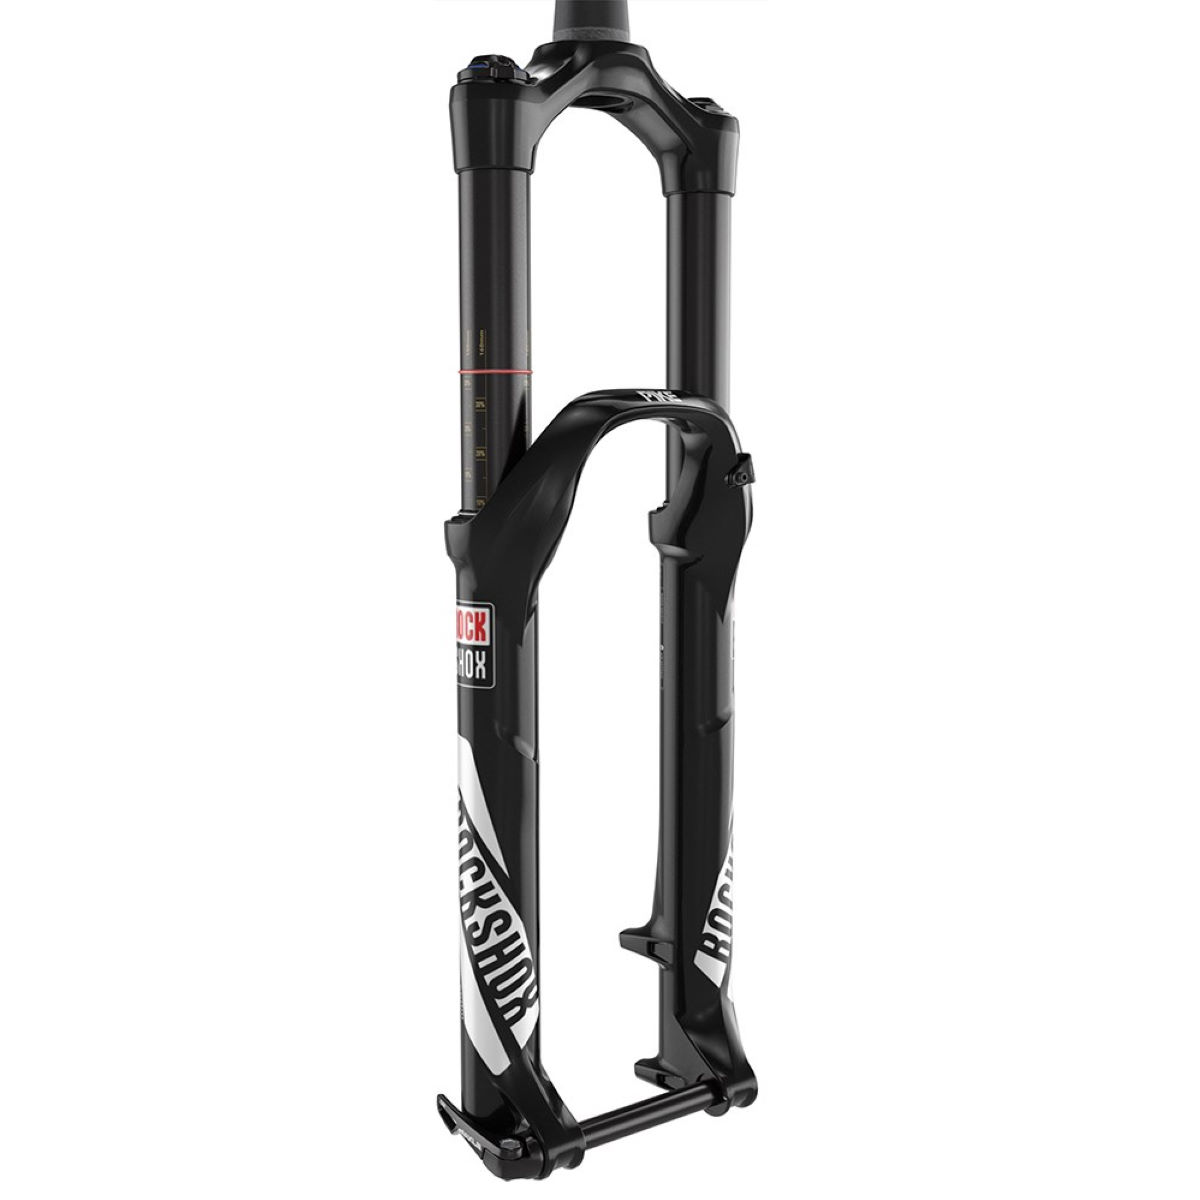 Fourche à suspension RockShox Pike RCT3 Solo Air (29 pouces) - Noir